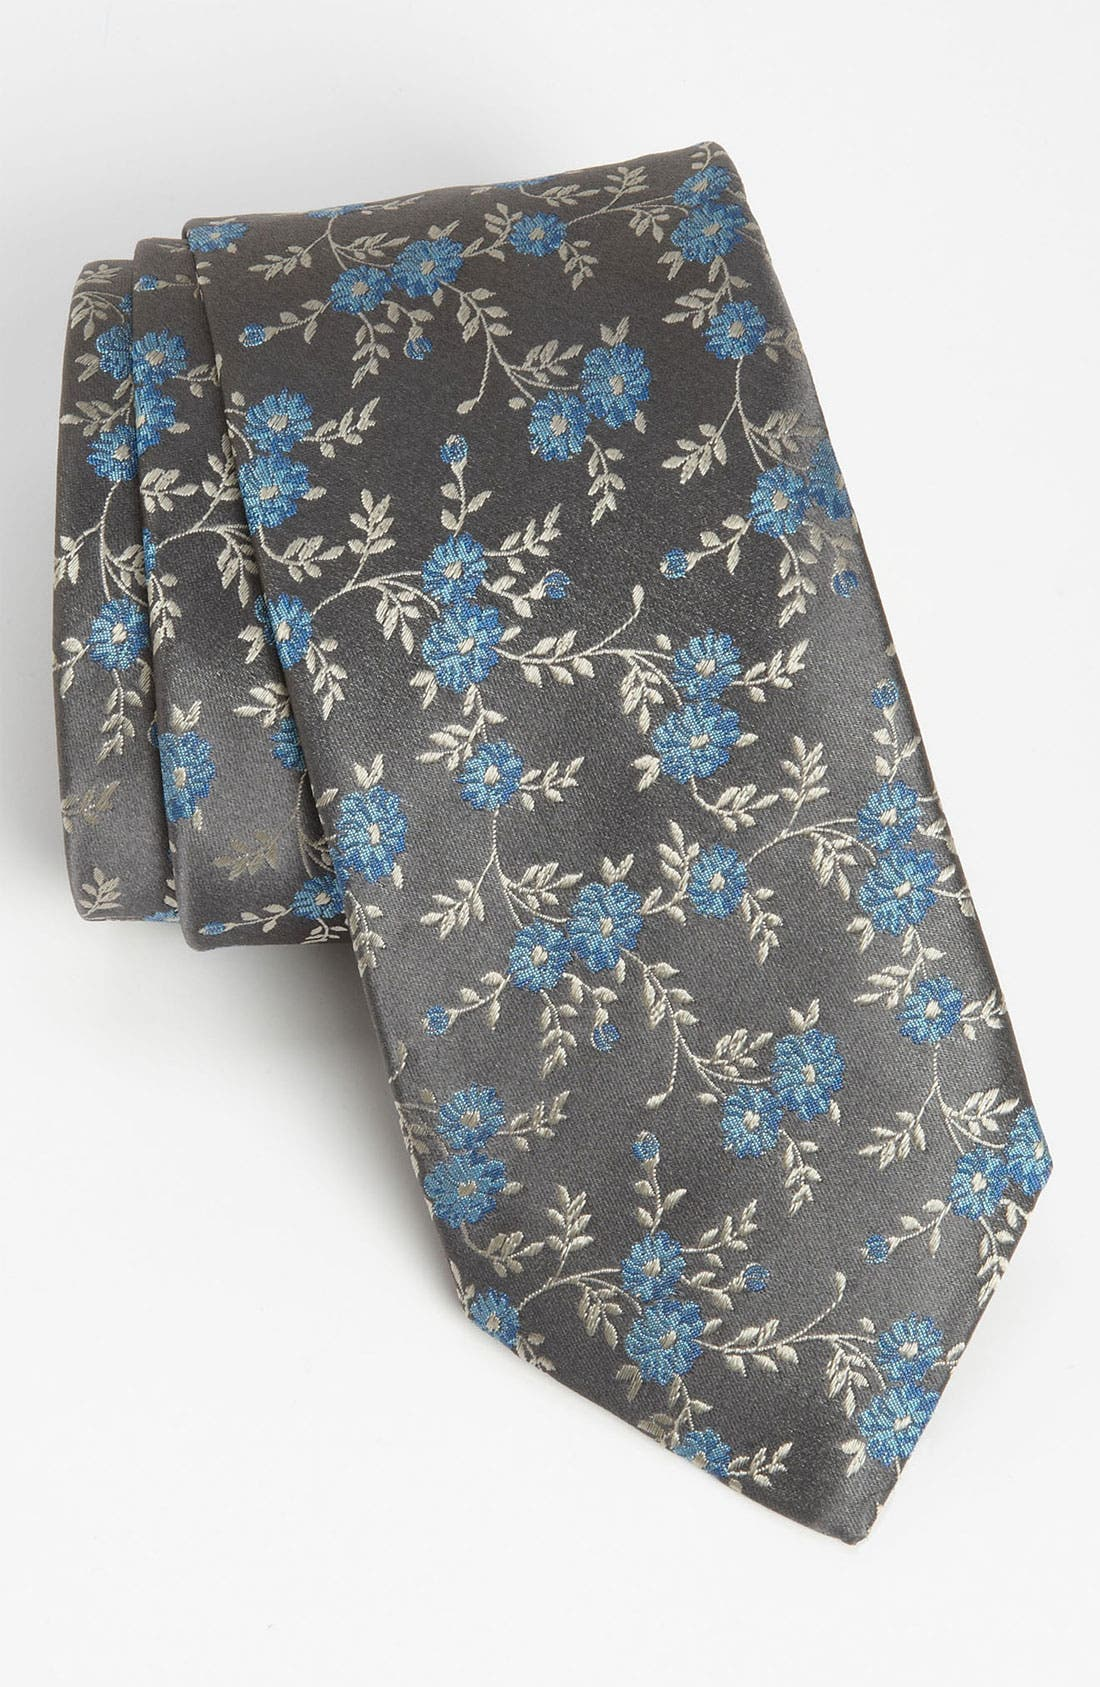 Alternate Image 1 Selected - Thomas Pink 'Frances Flower' Woven Silk Tie